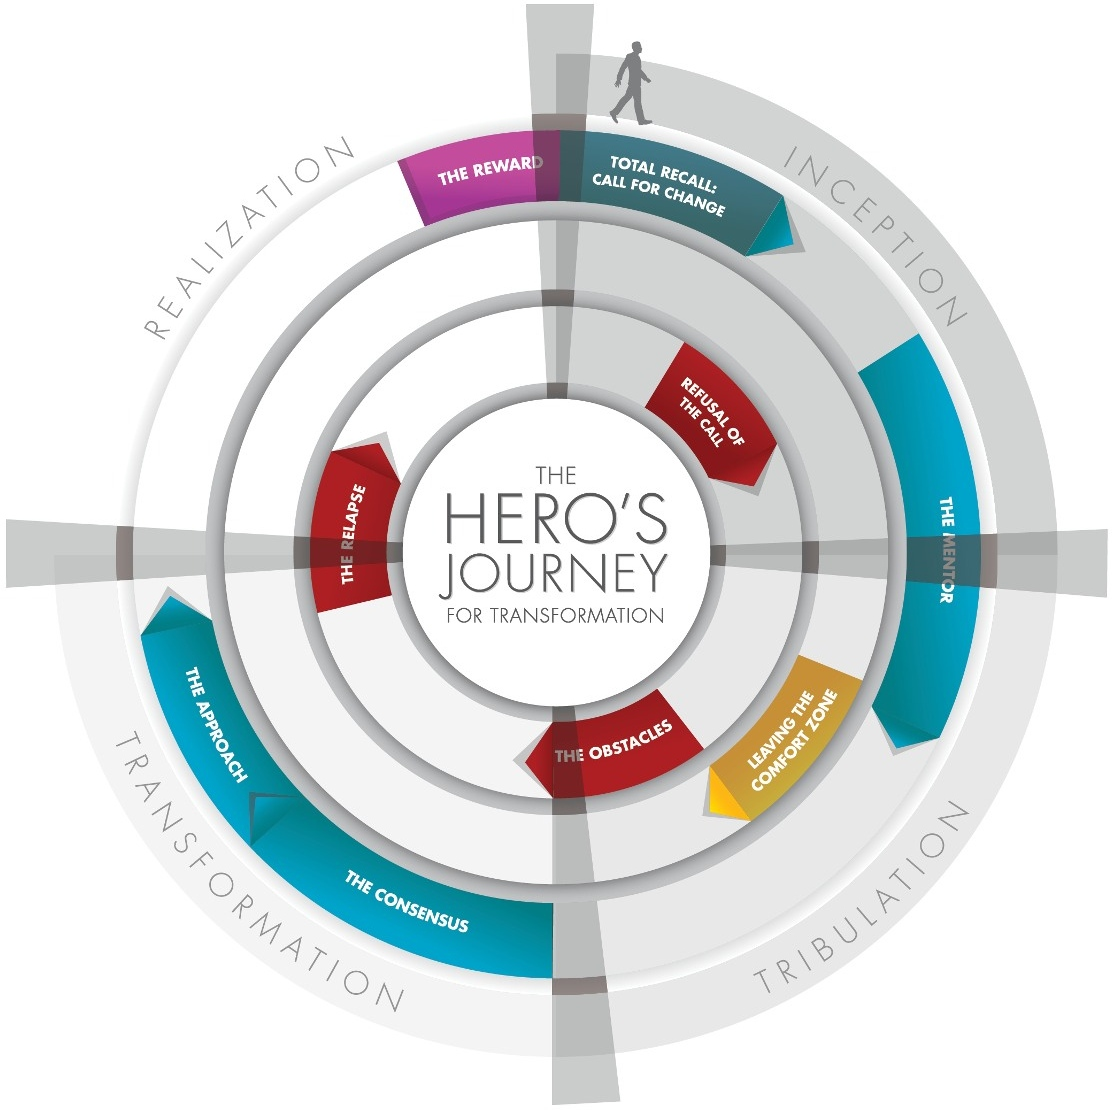 Title: Figure 17.3 – The New Hero's Journey | Author: Brian Solis | Source: Flickr | License: CC BY 2.0